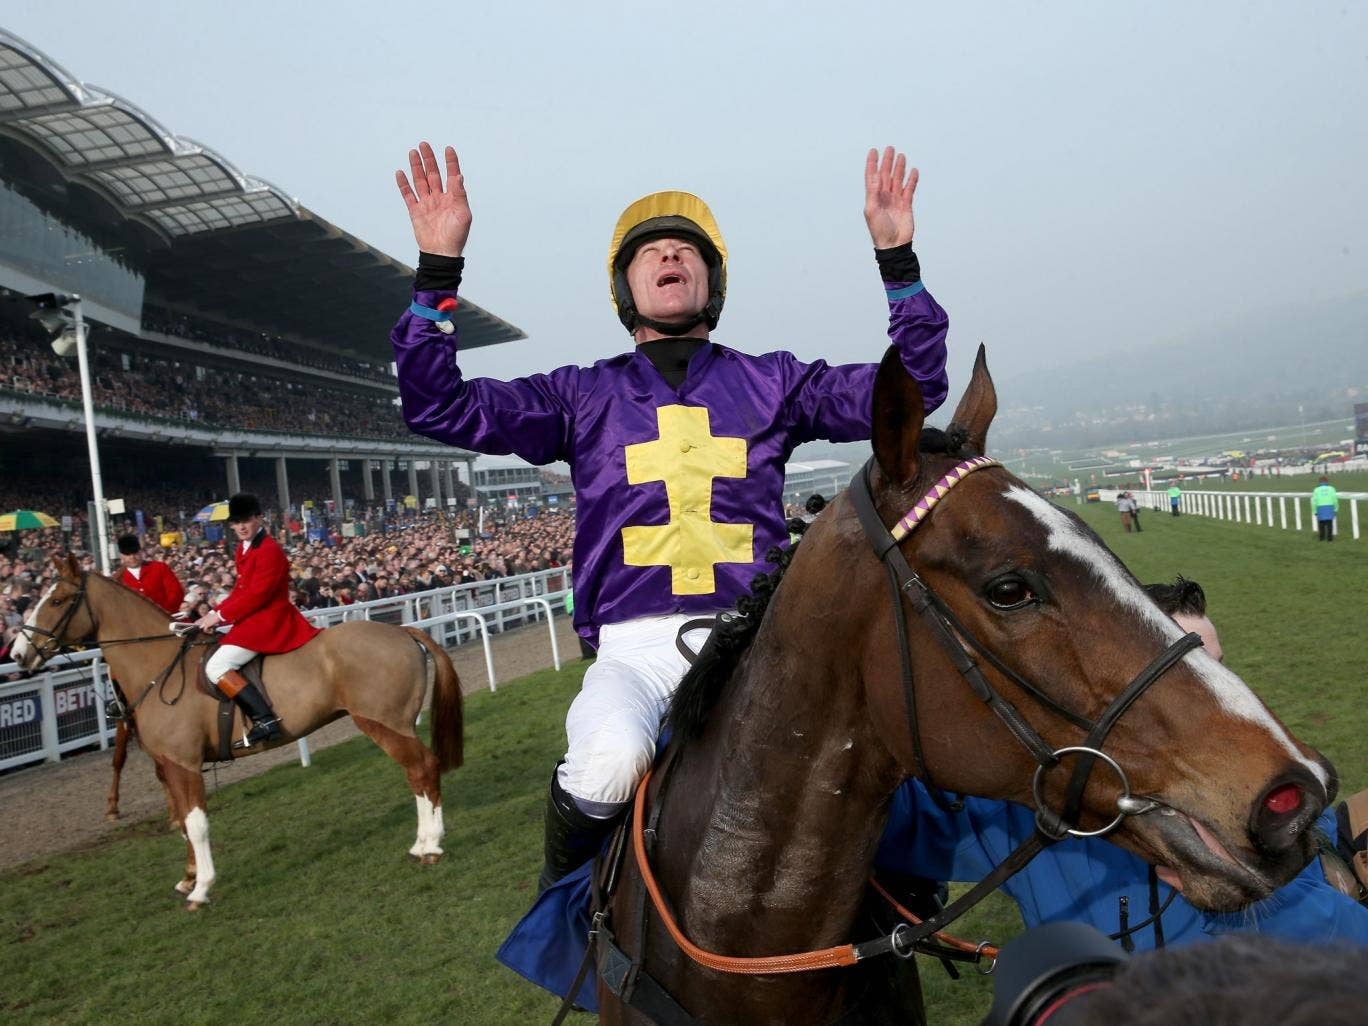 Davy Russell celebrates after riding Lord Windermere to victory in the Betfred Cheltenham Gold Cup Chase on Gold Cup day at the Cheltenham Festival